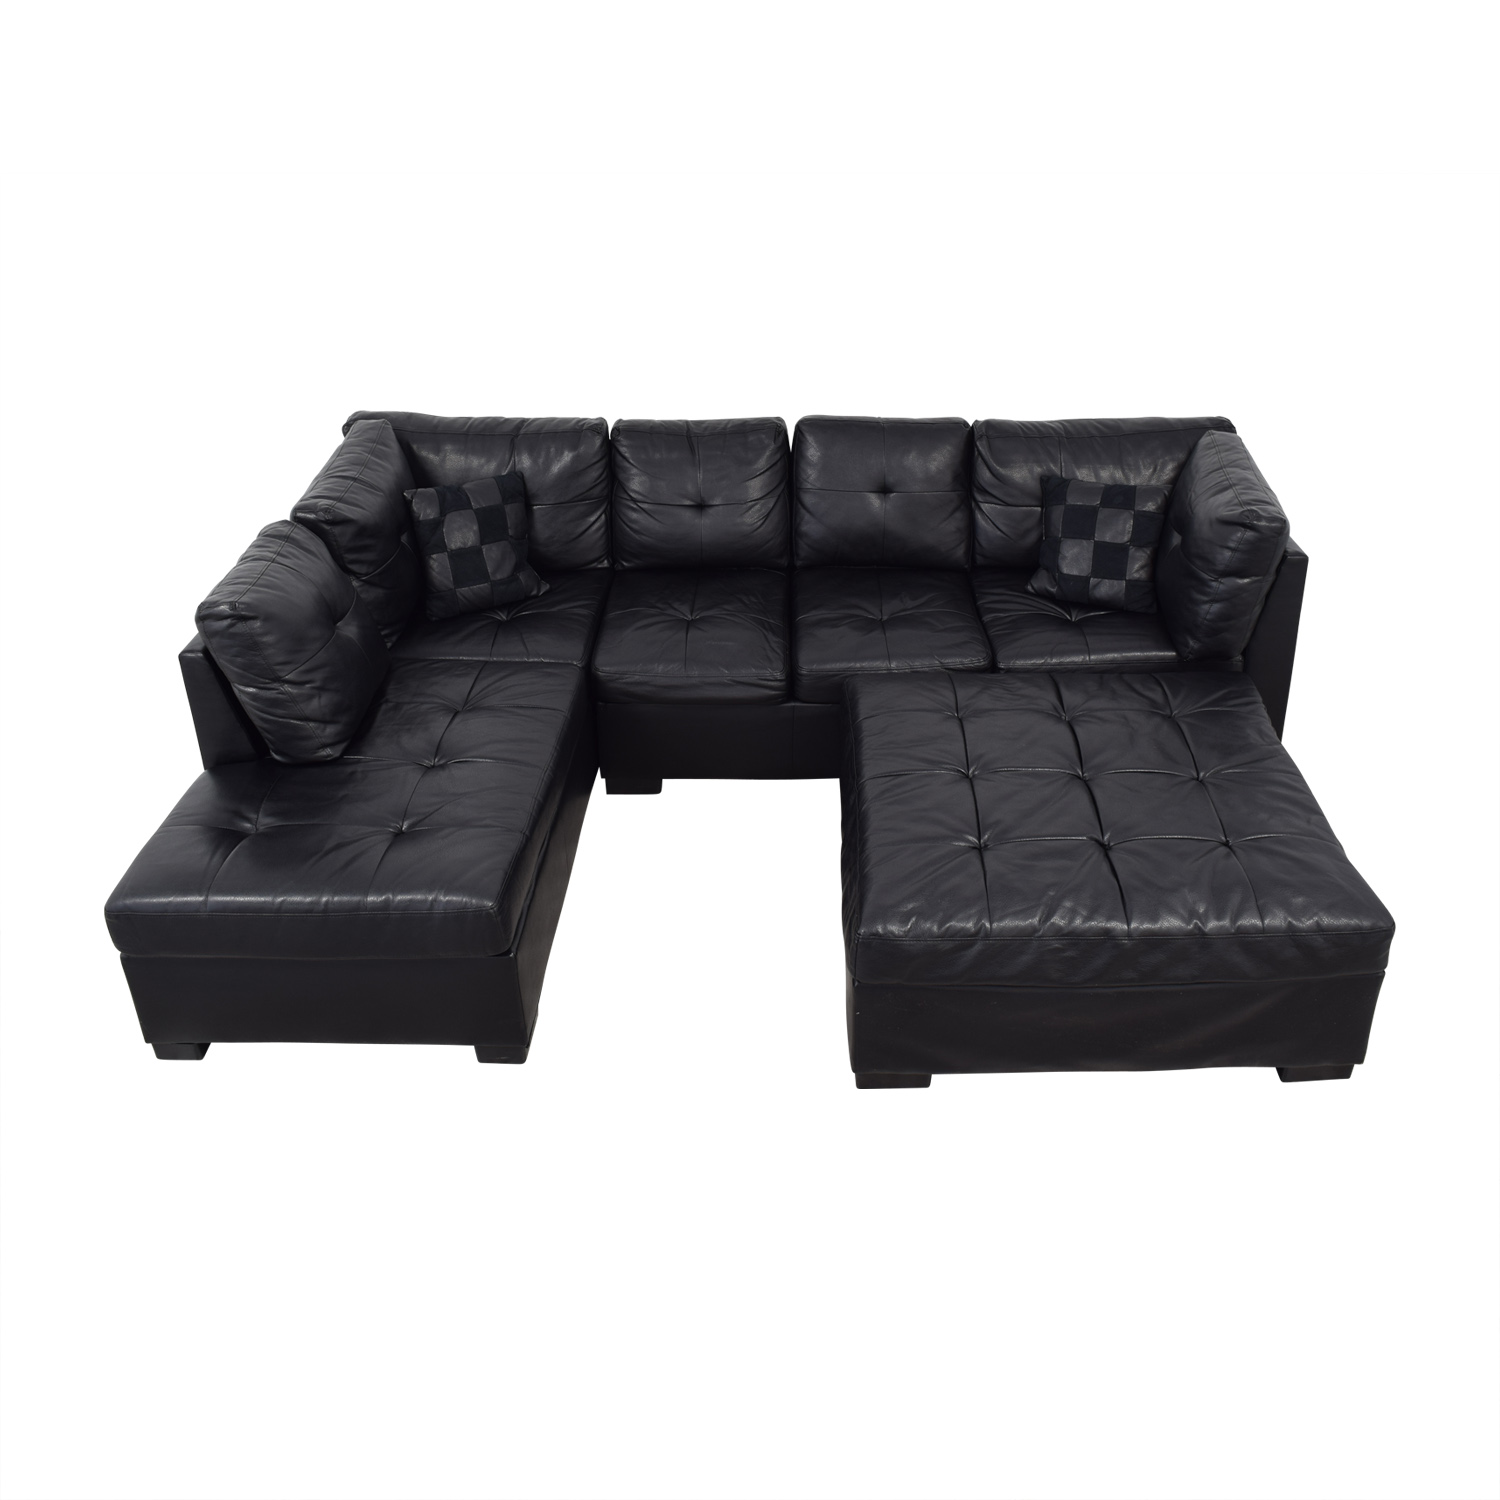 Coaster Fine Furniture Coaster Fine Furniture Black Tufted  Chaise Sectional with Ottoman